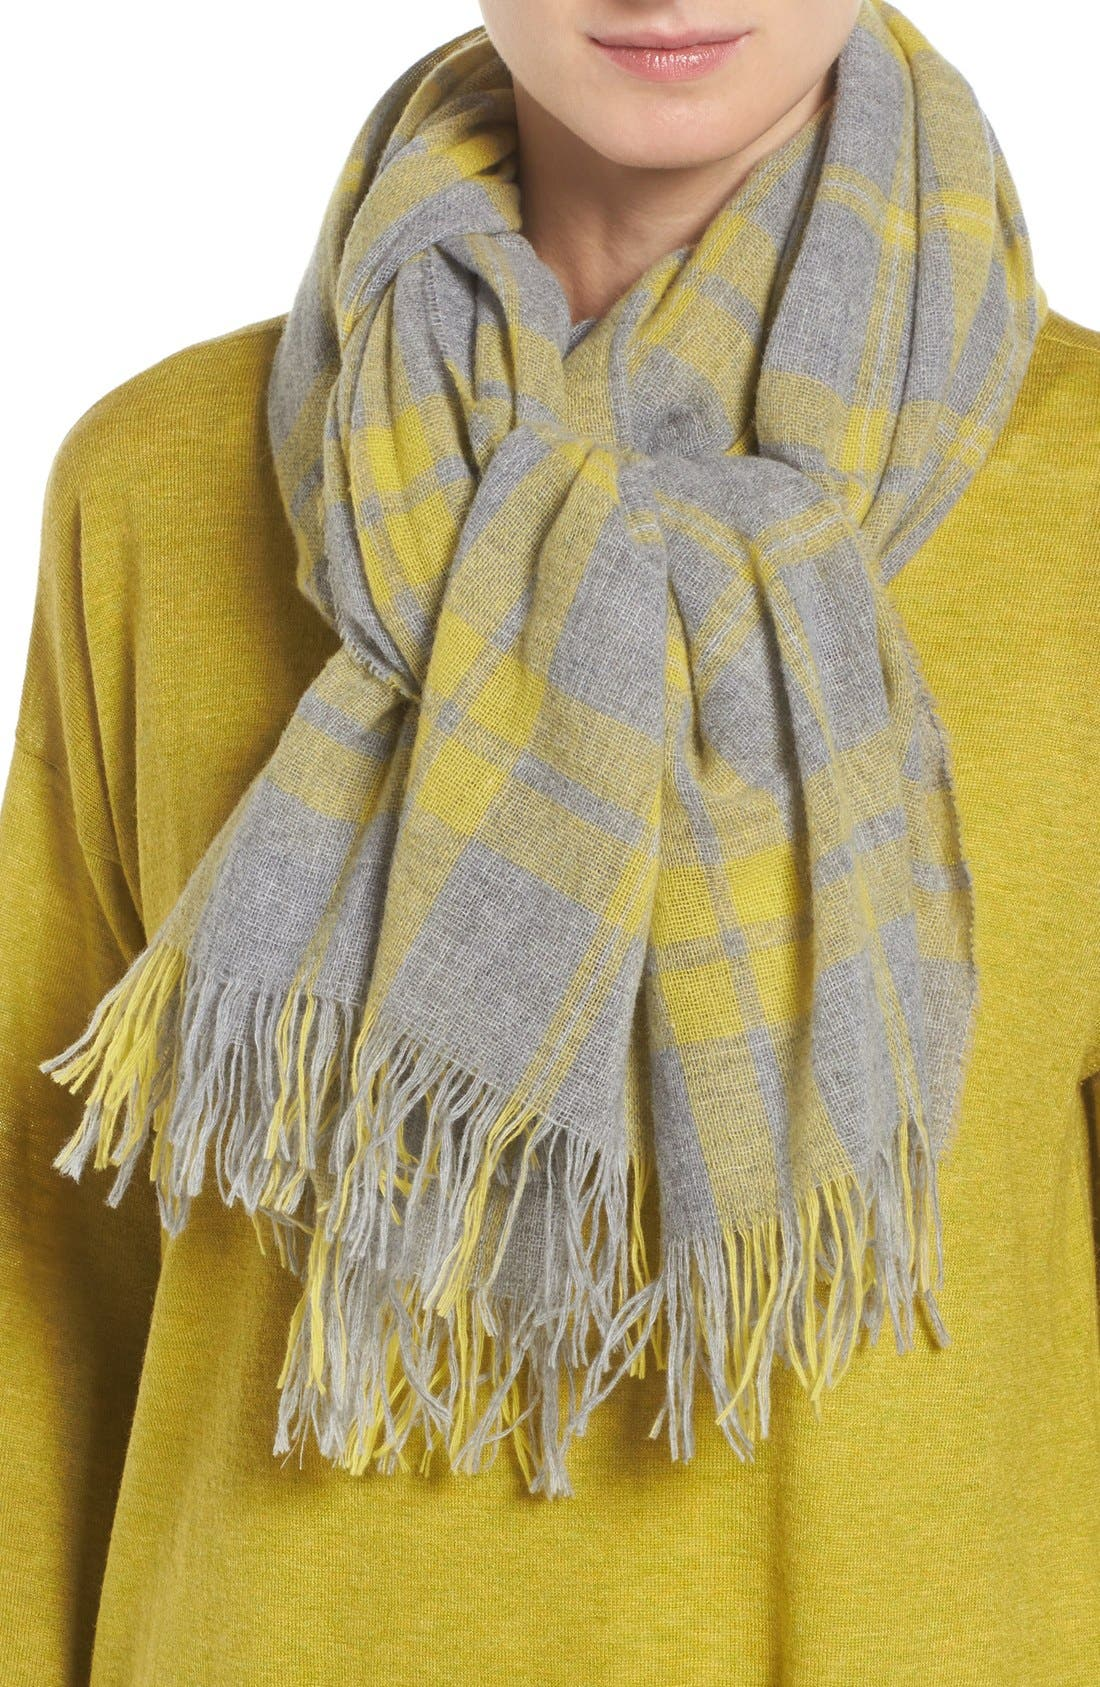 Alternate Image 1 Selected - Eileen Fisher Soft Wool & Cashmere Plaid Scarf